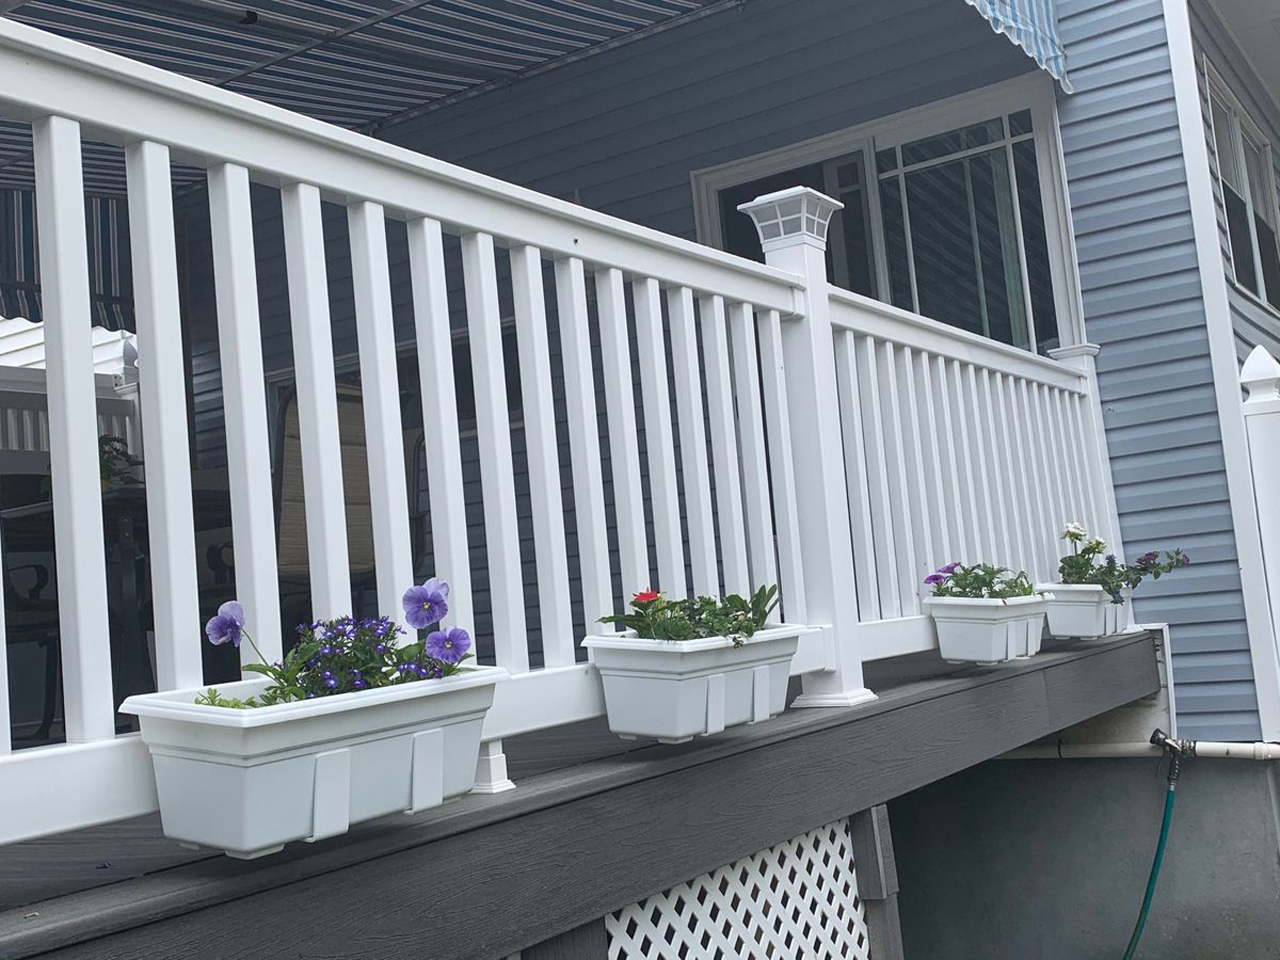 Customer Photo - Flower Boxes on Bottom Deck Rail